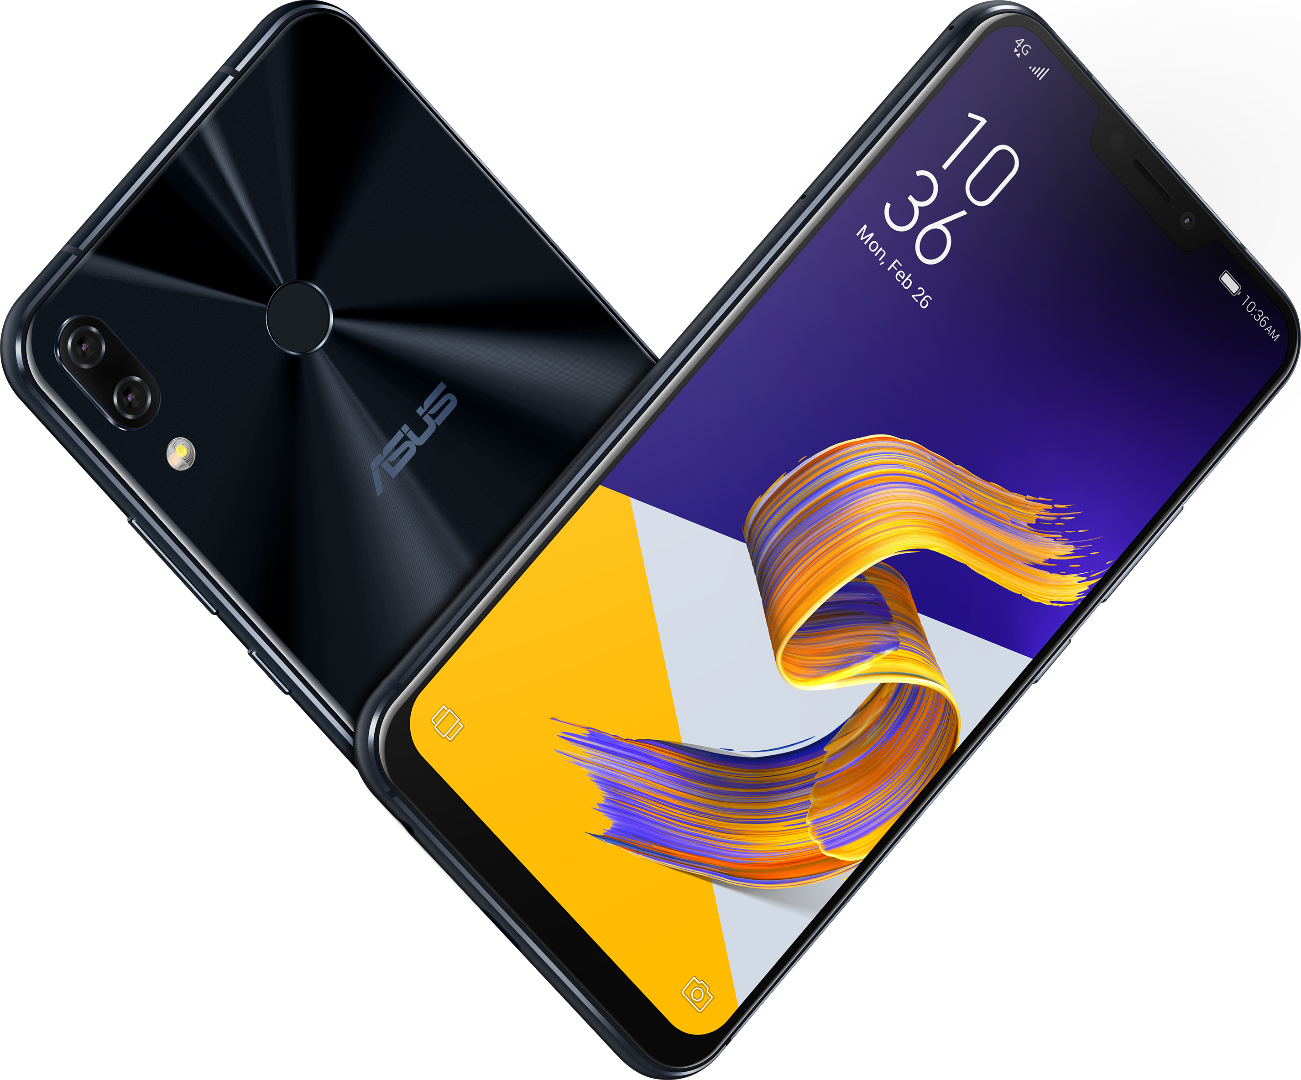 ASUS ZenFone 5/5Z/5liteを発表へ。6.2型/Android8.0/Snapdragon 845/RAM4GBで6.3万円という高コスパ。